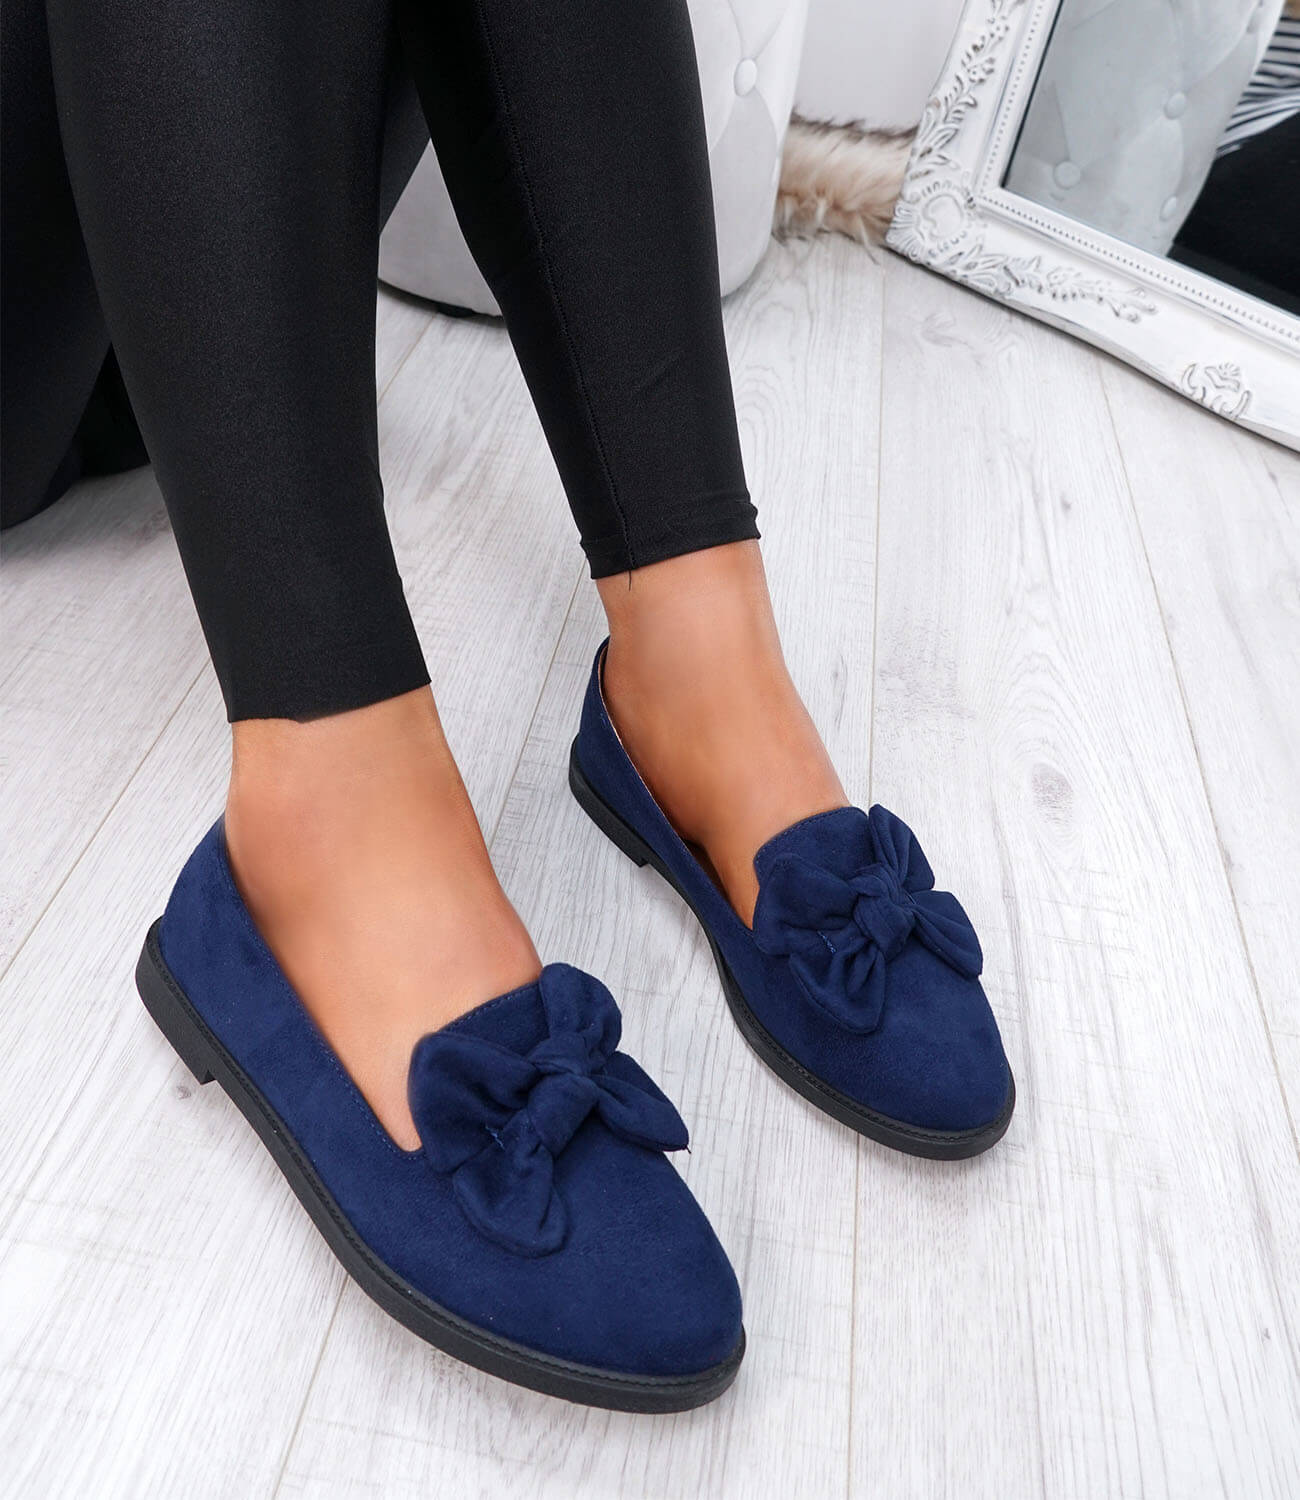 WOMENS-LADIES-BOW-BALLERINA-PUMPS-FLATS-SLIP-ON-BALLET-CASUAL-WORK-SHOES-SIZE thumbnail 25